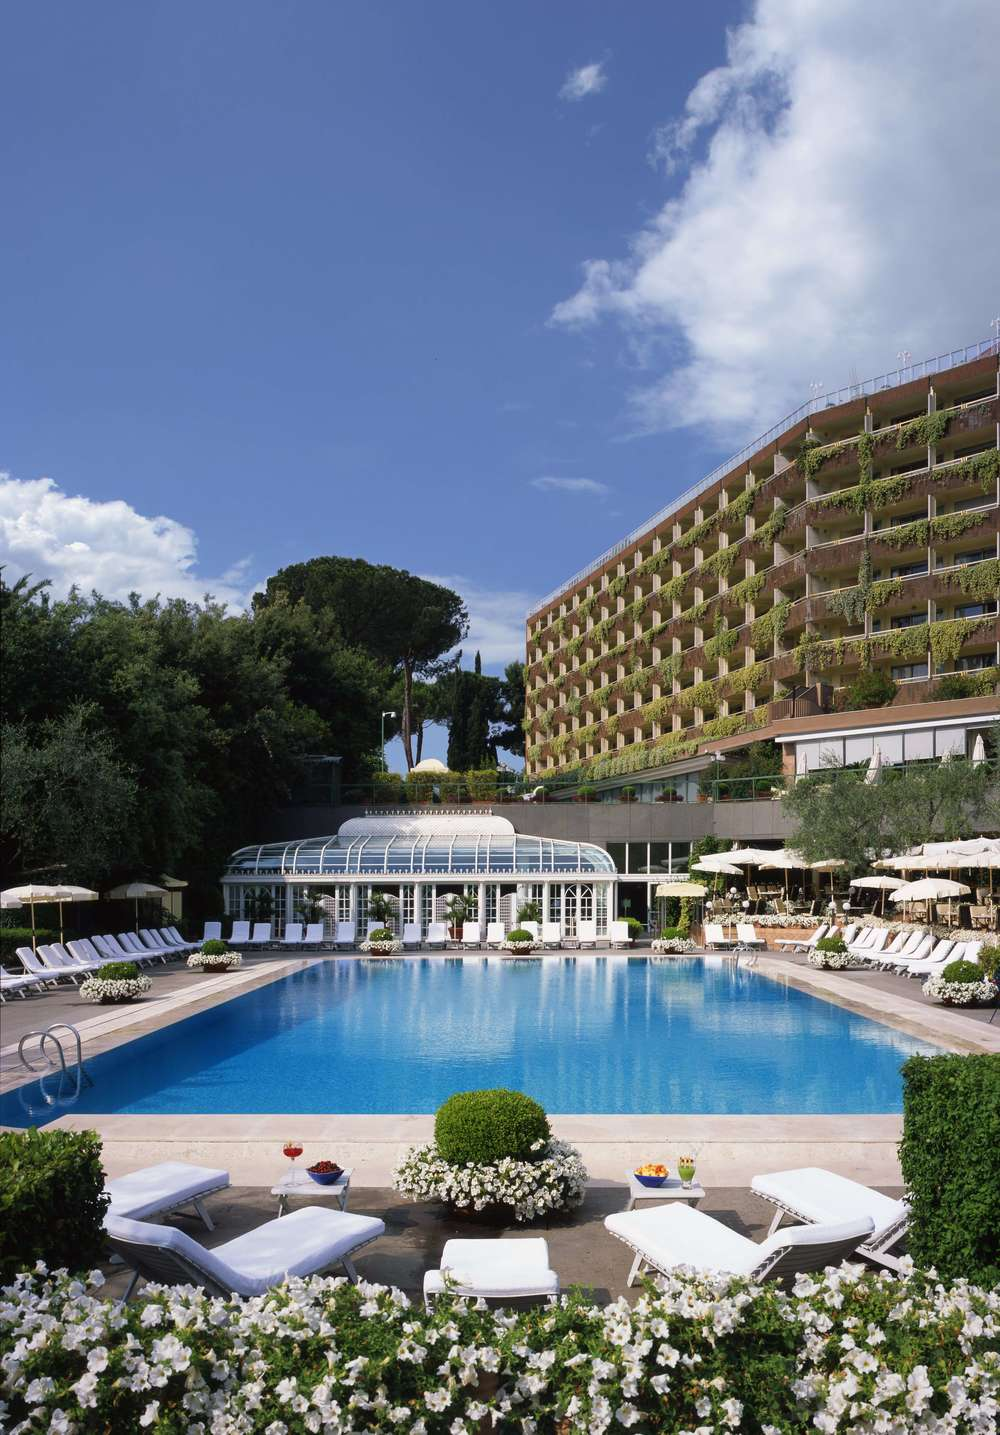 Rome Cavalieri Outdoor Pool.jpg